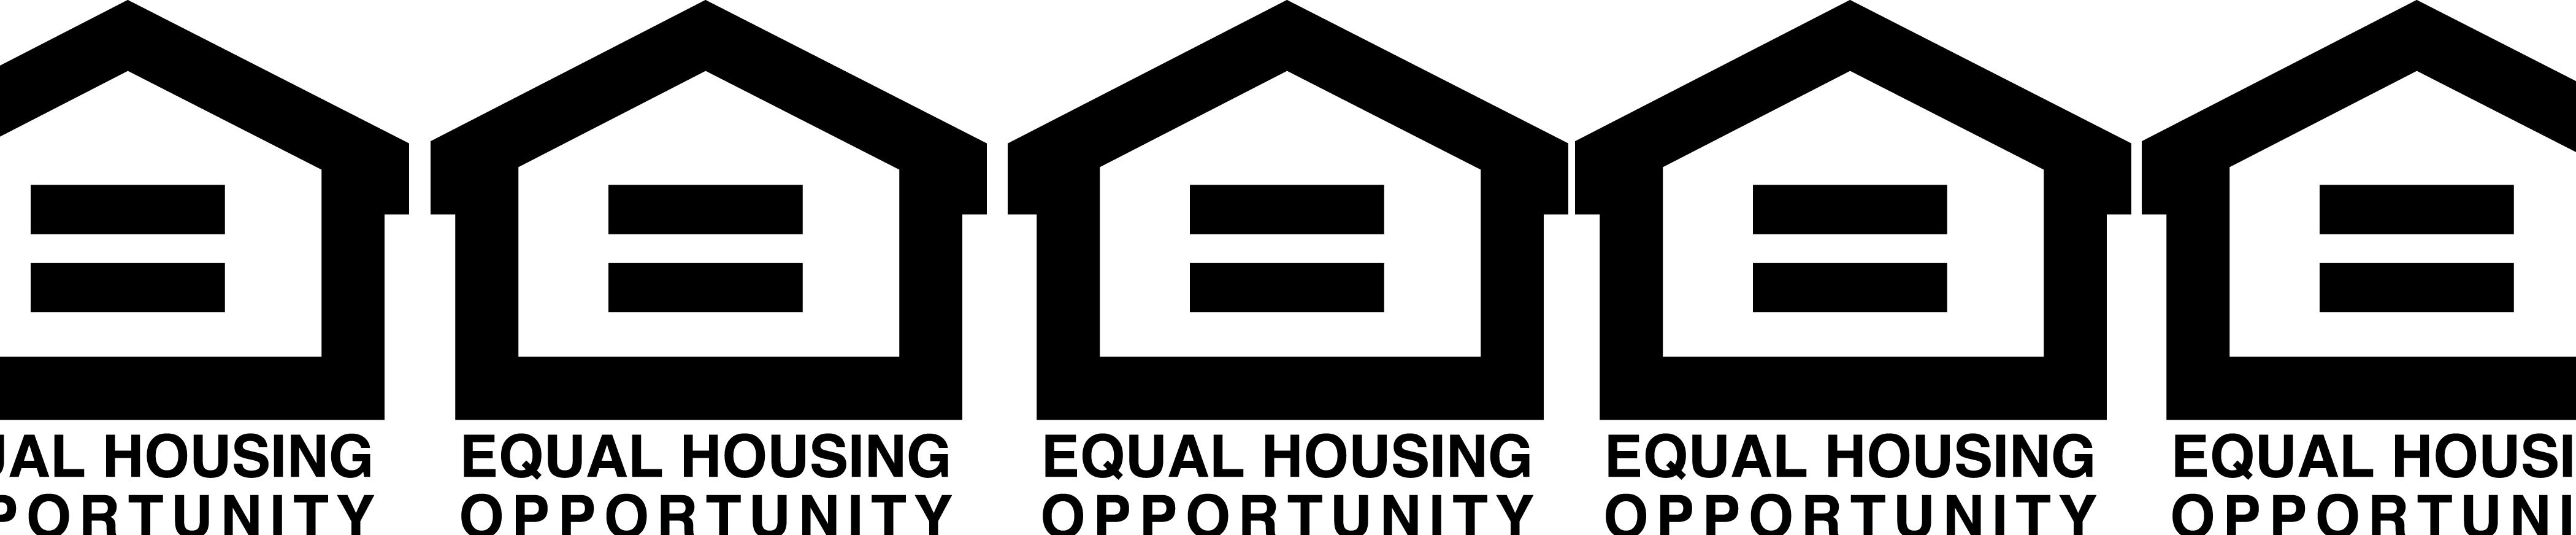 The facts about state's affordable housing statute